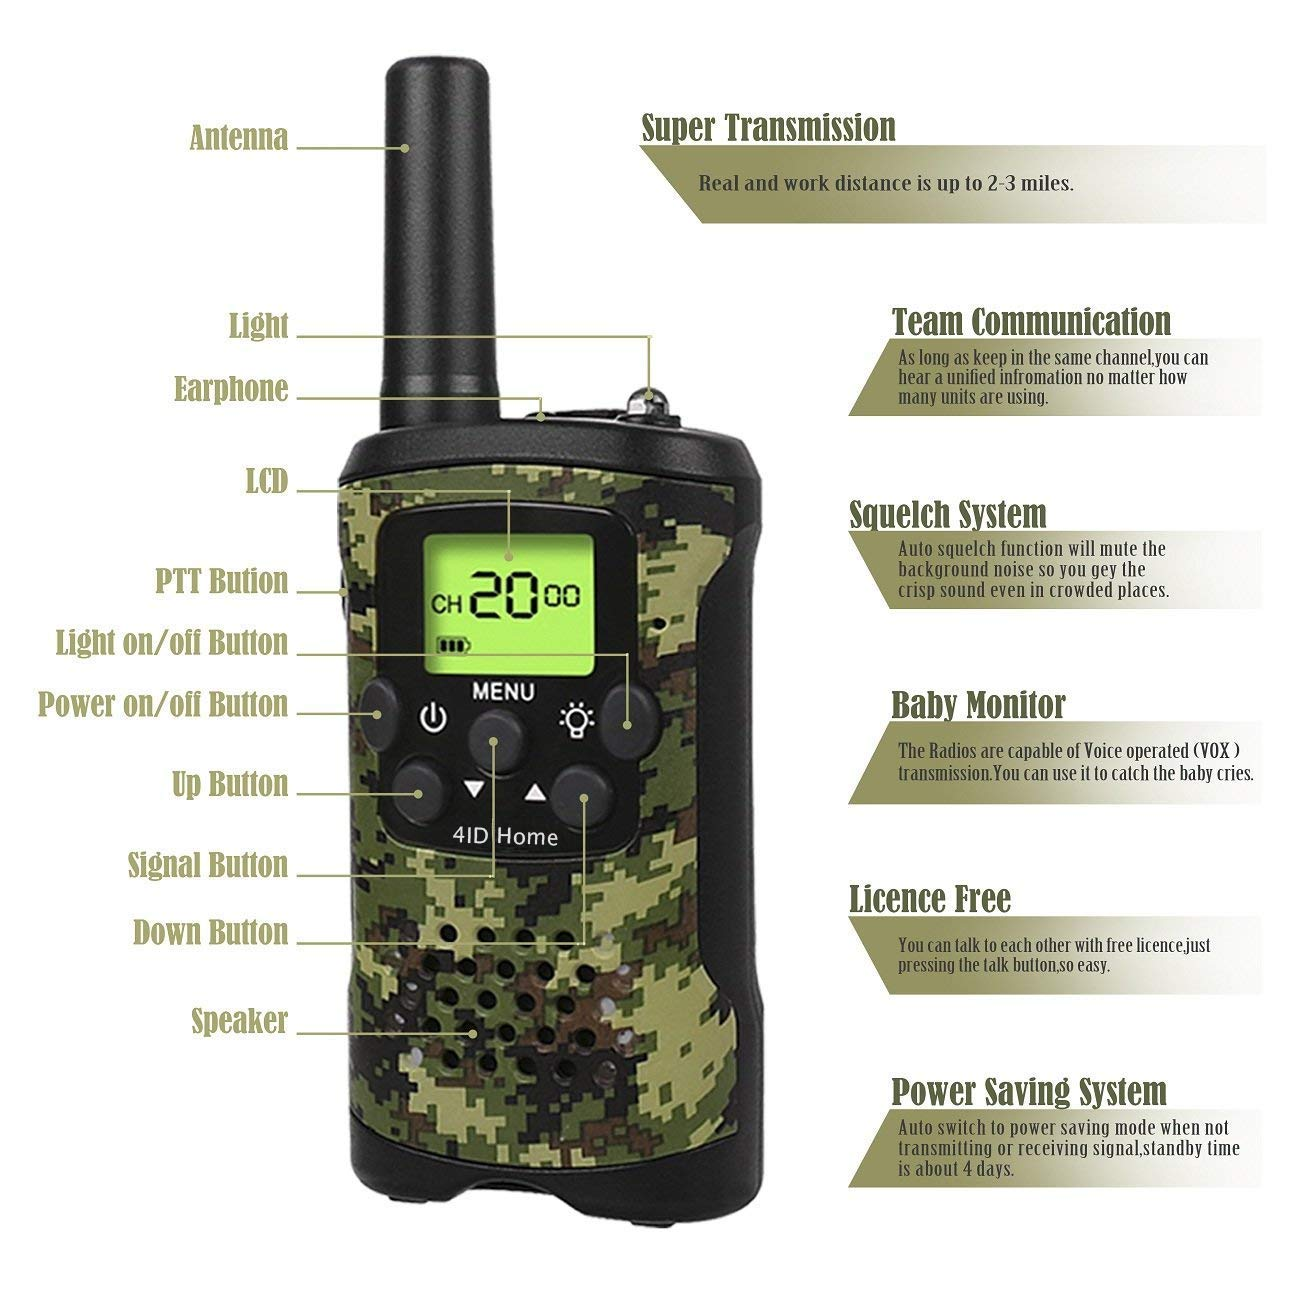 Ideahome Kids walkie talkies Binoculars Toys - Kids' Binocular 2 Way radios walkie Talkie 3 Miles Long Range walky Talky Children Outdoor Toys Best Gifts for Boys and Girls (camo) by Ideahome (Image #2)